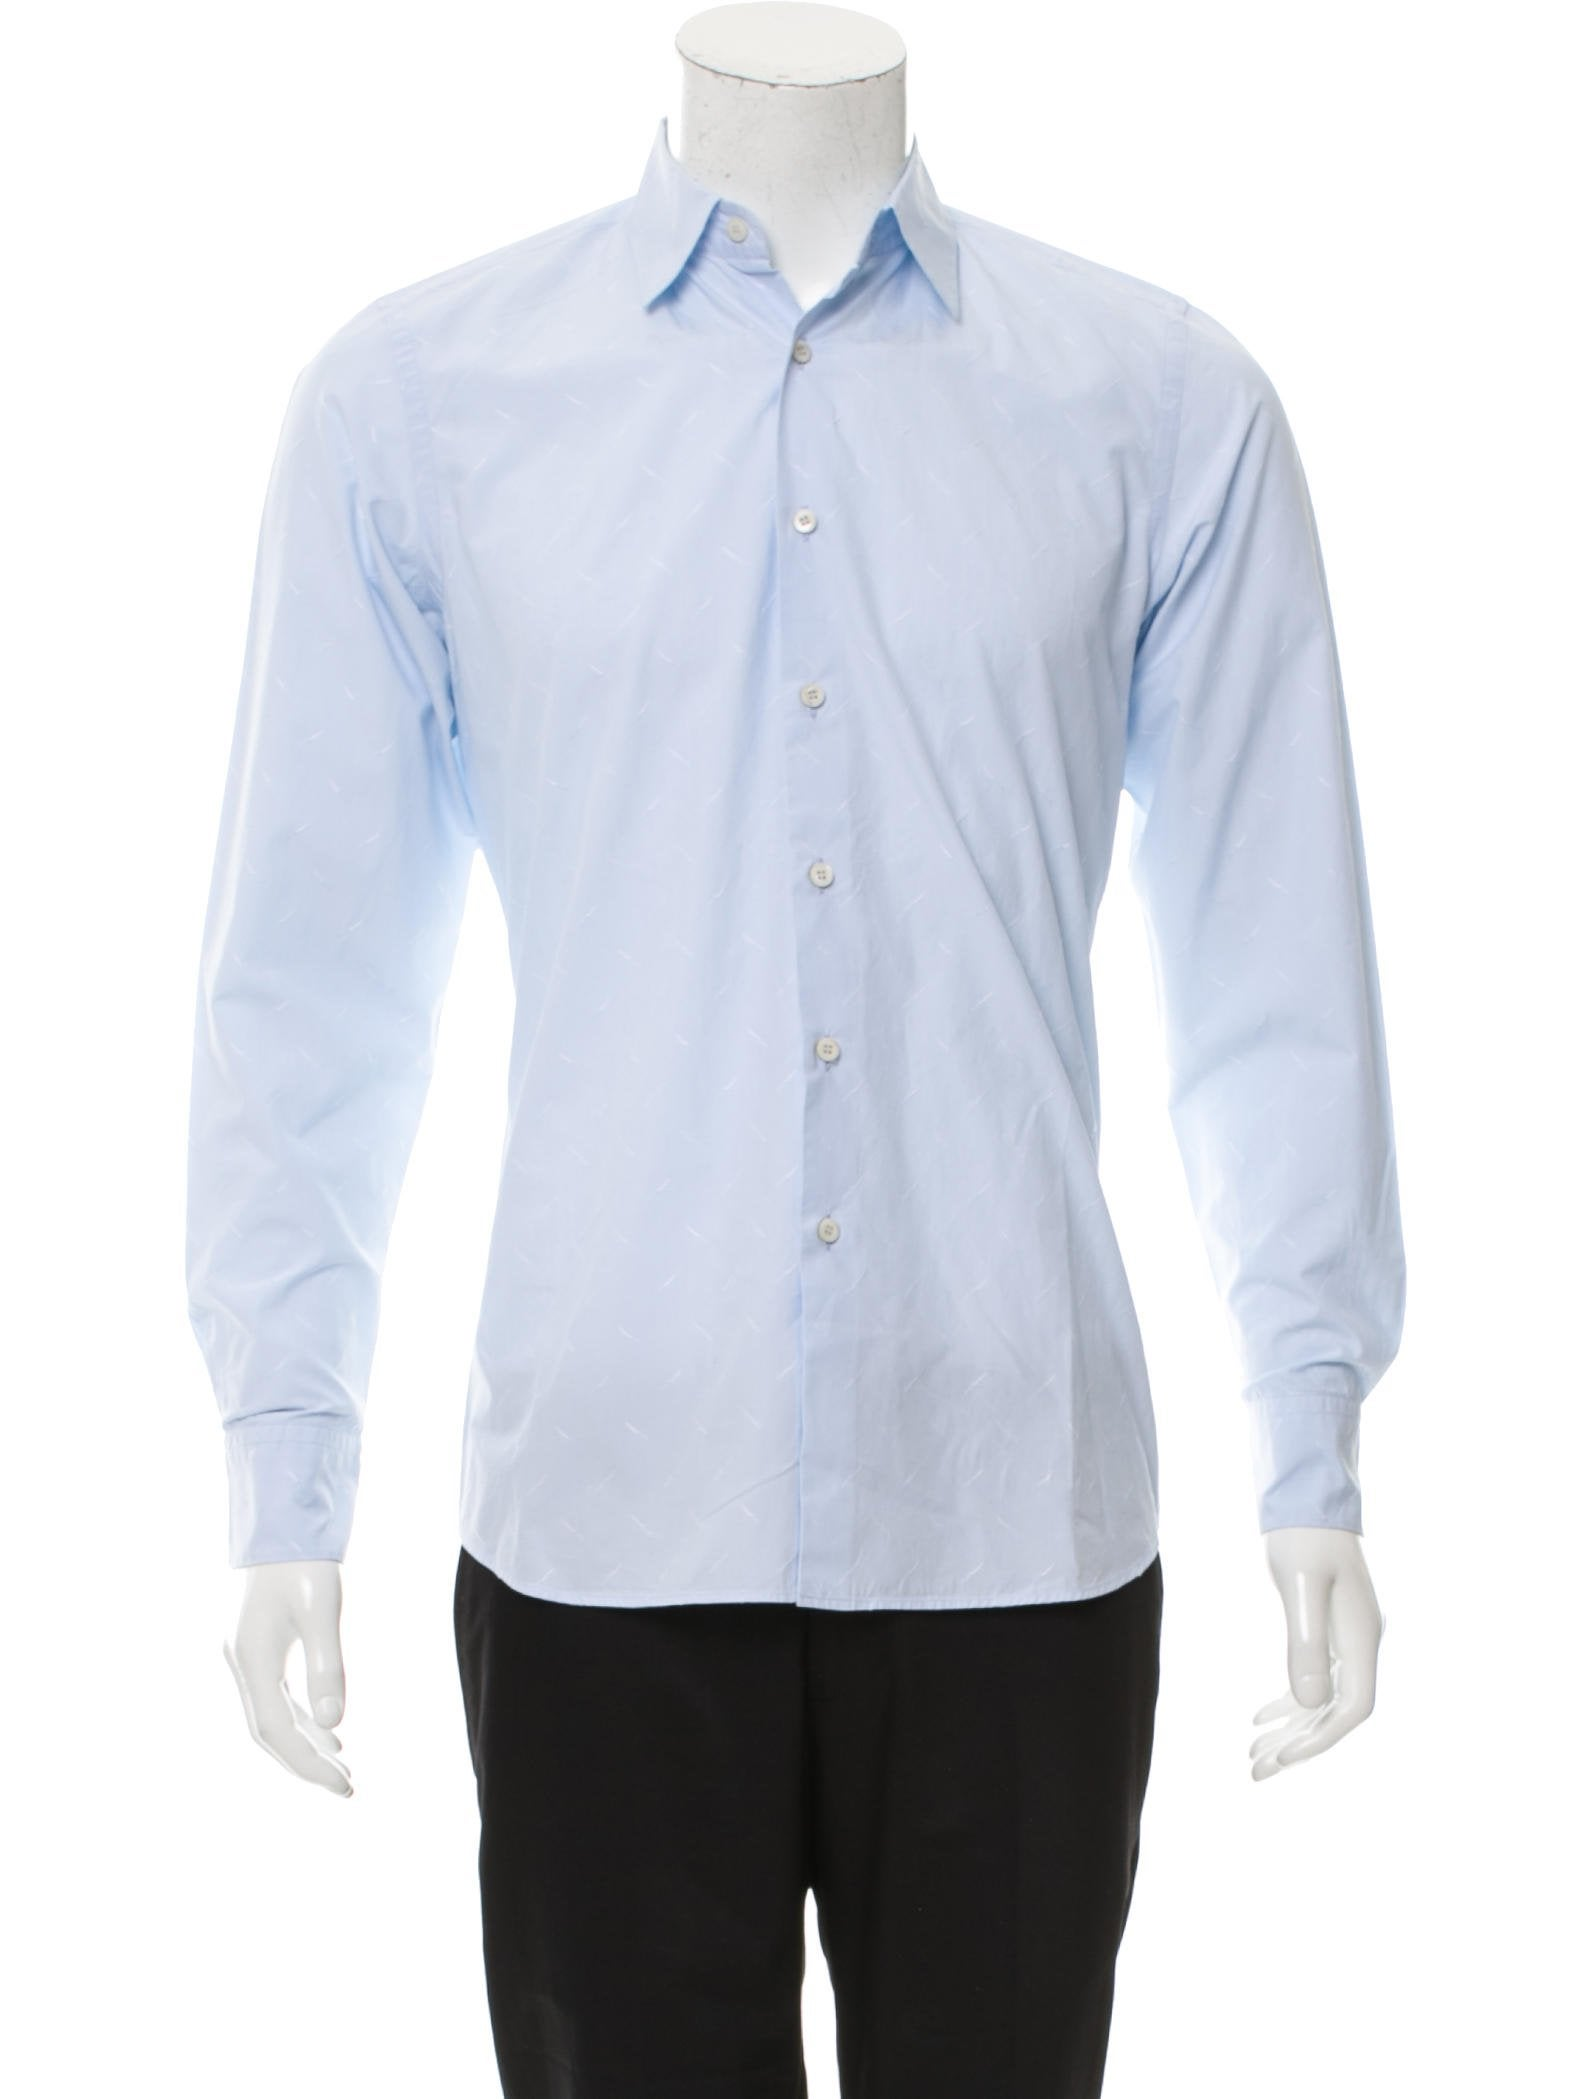 prada embroidered button up shirt clothing pra164262